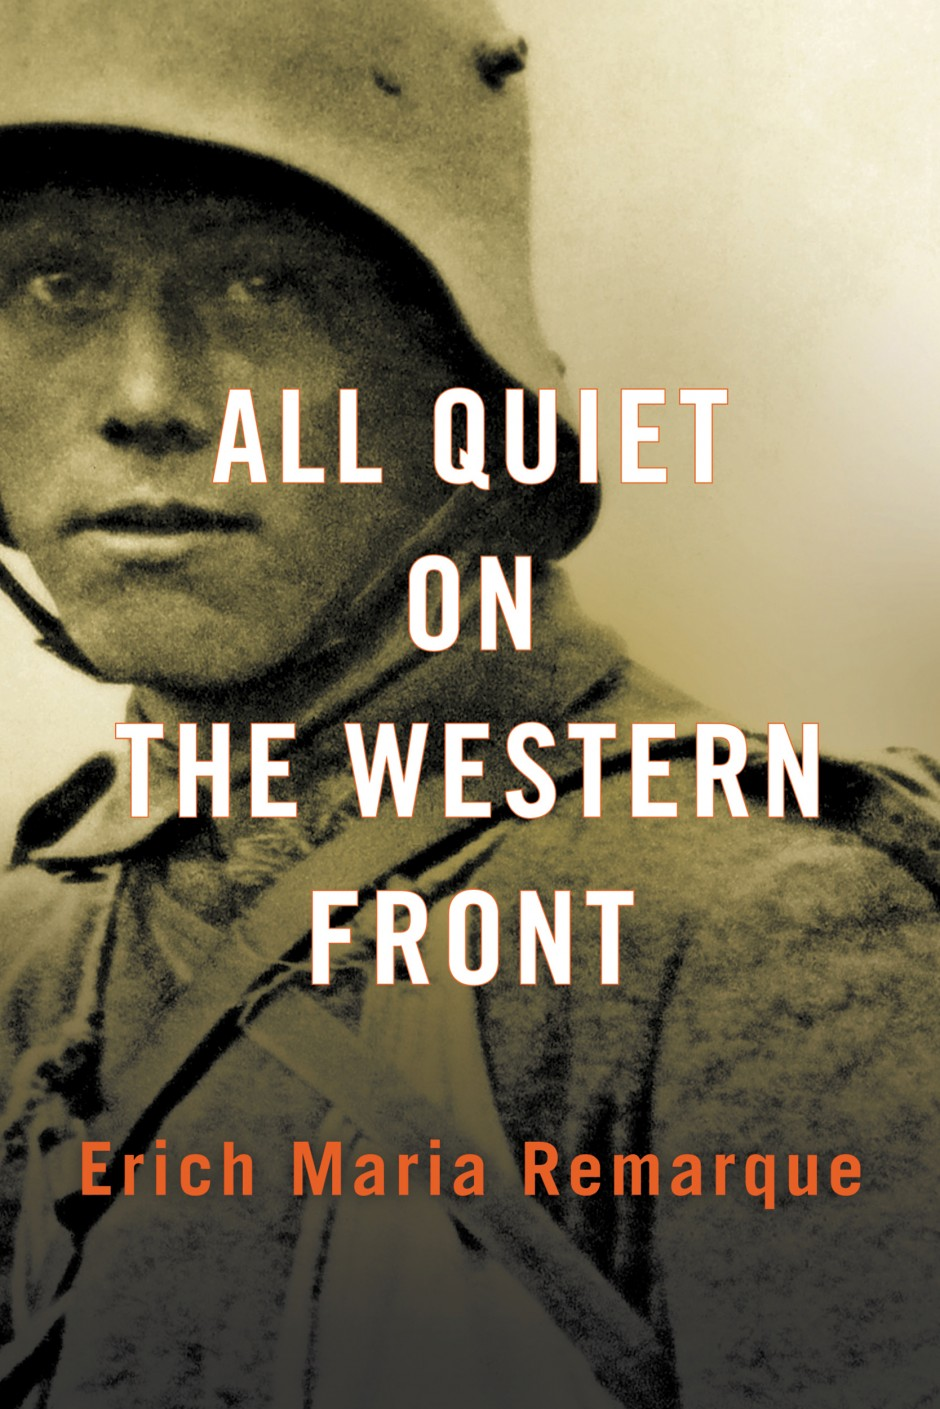 a review of eric remarques book all quiet on the western front